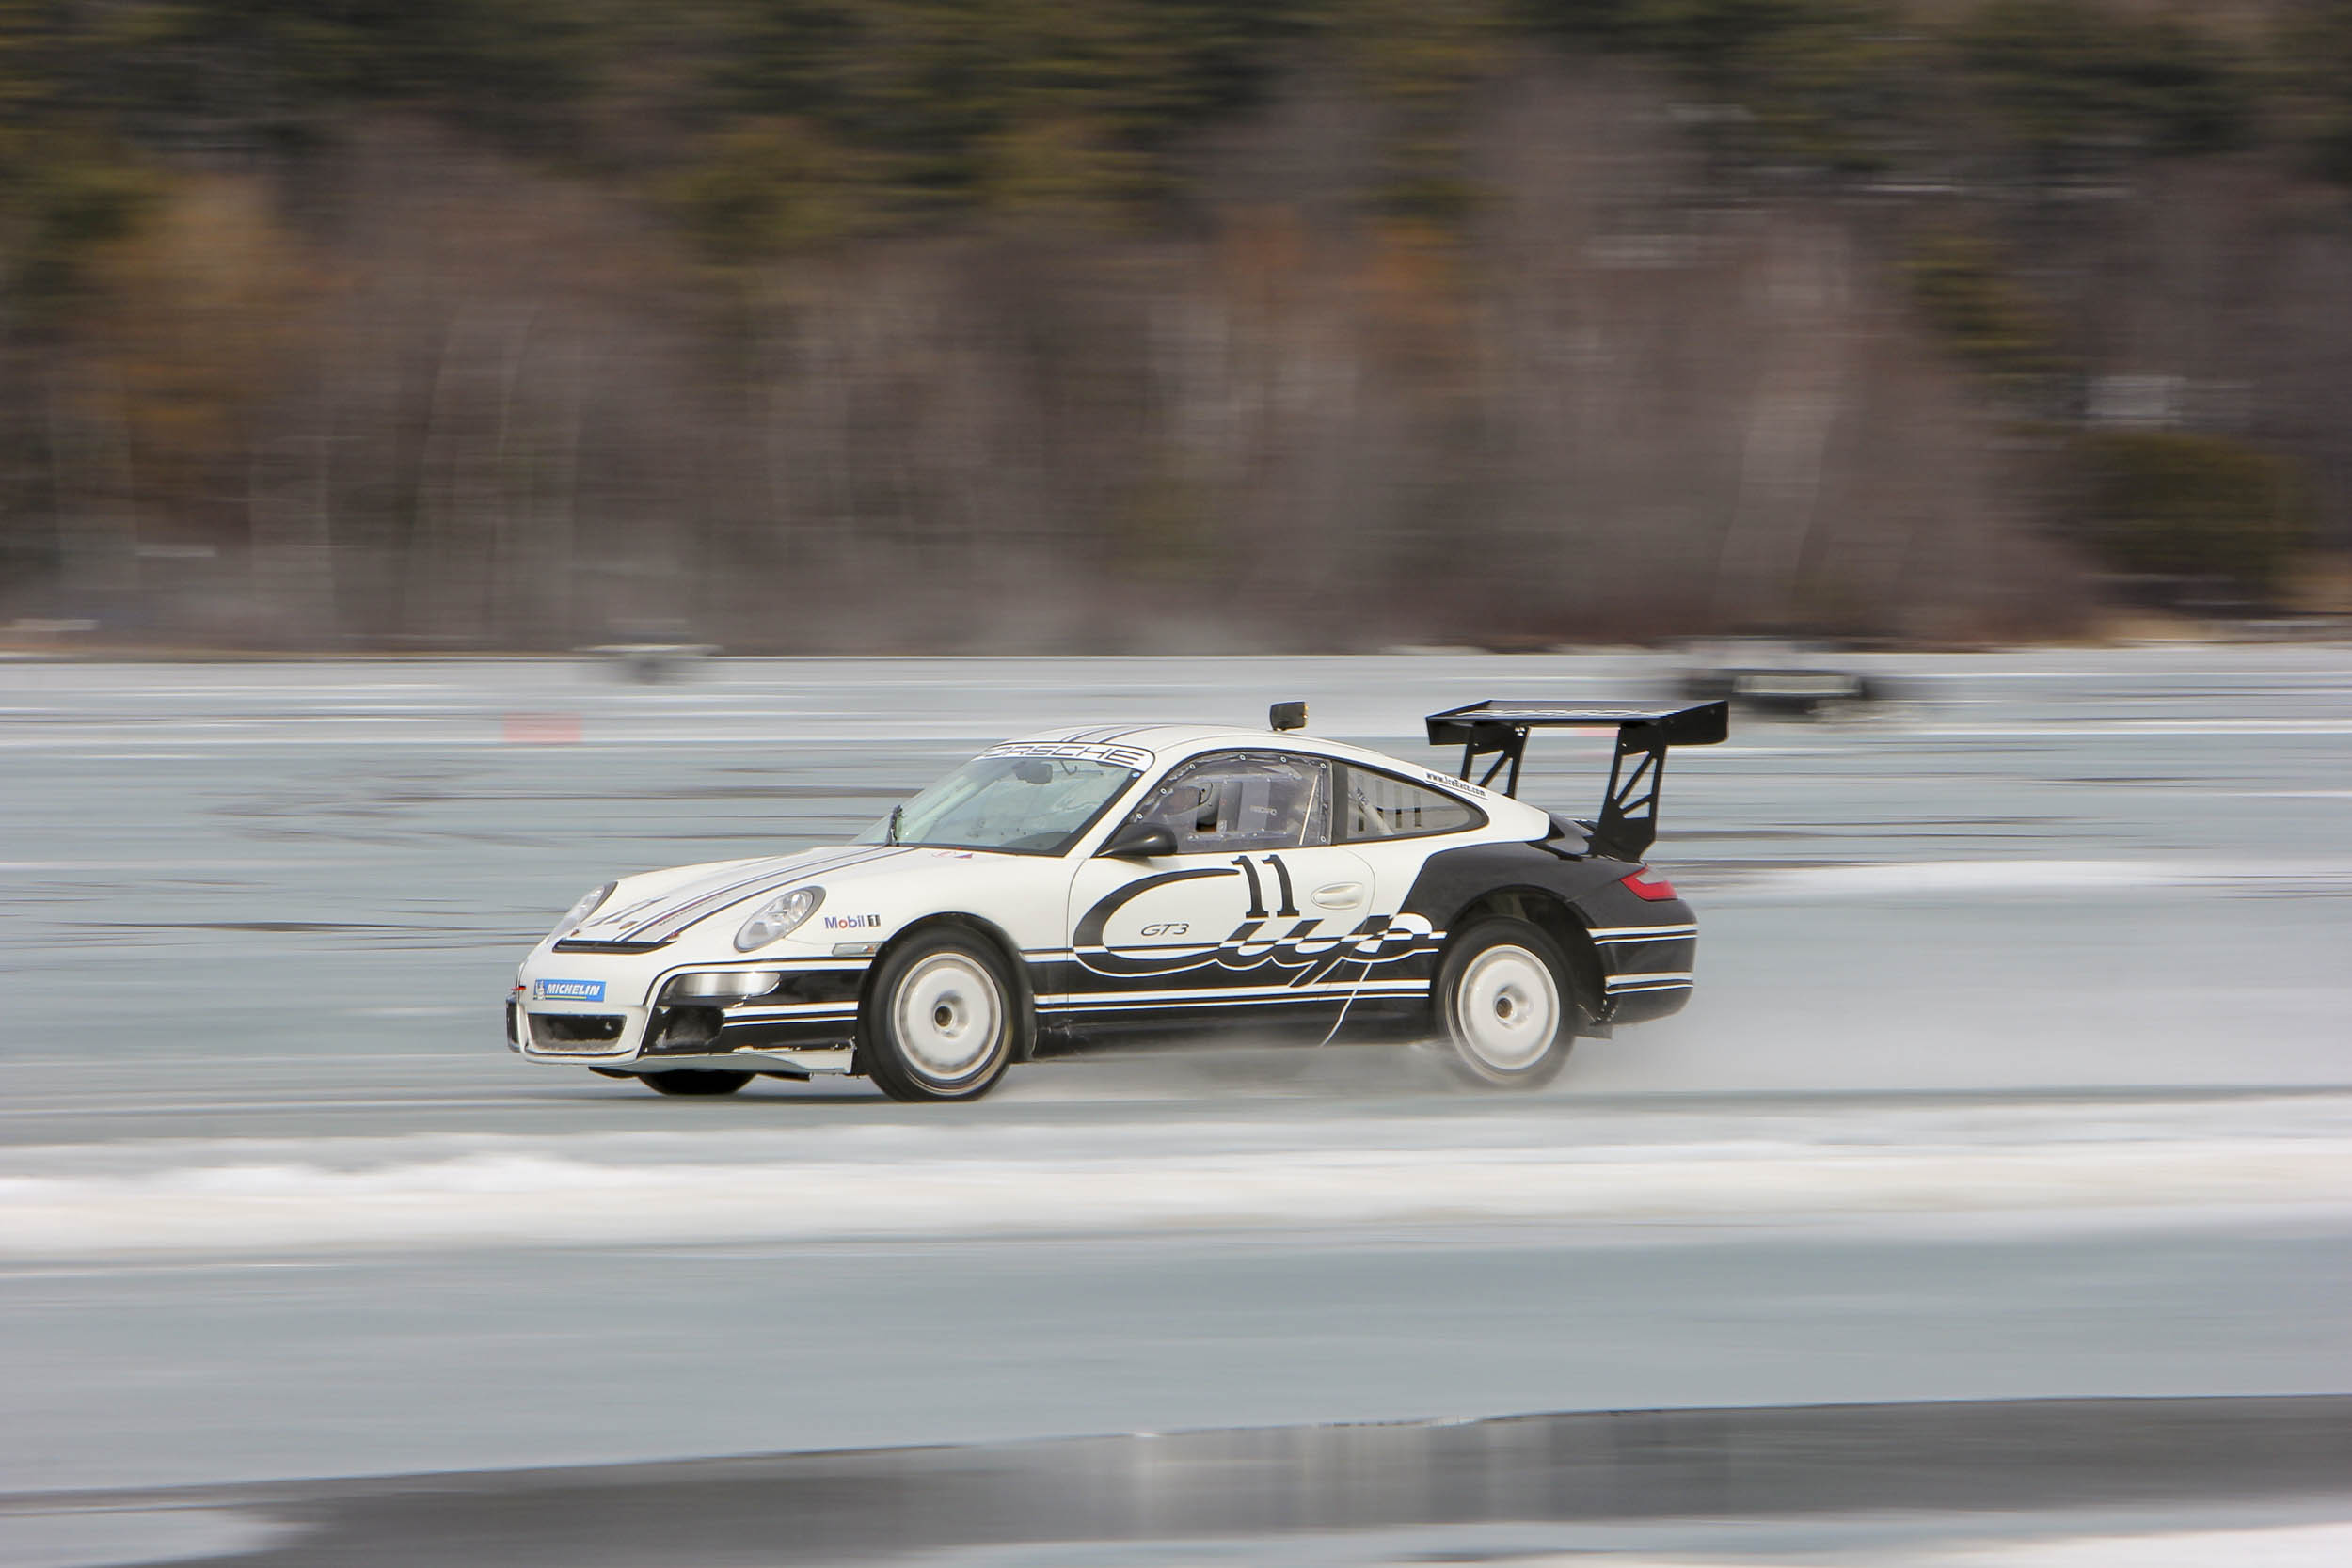 Porsche 911 GT3 driving on ice